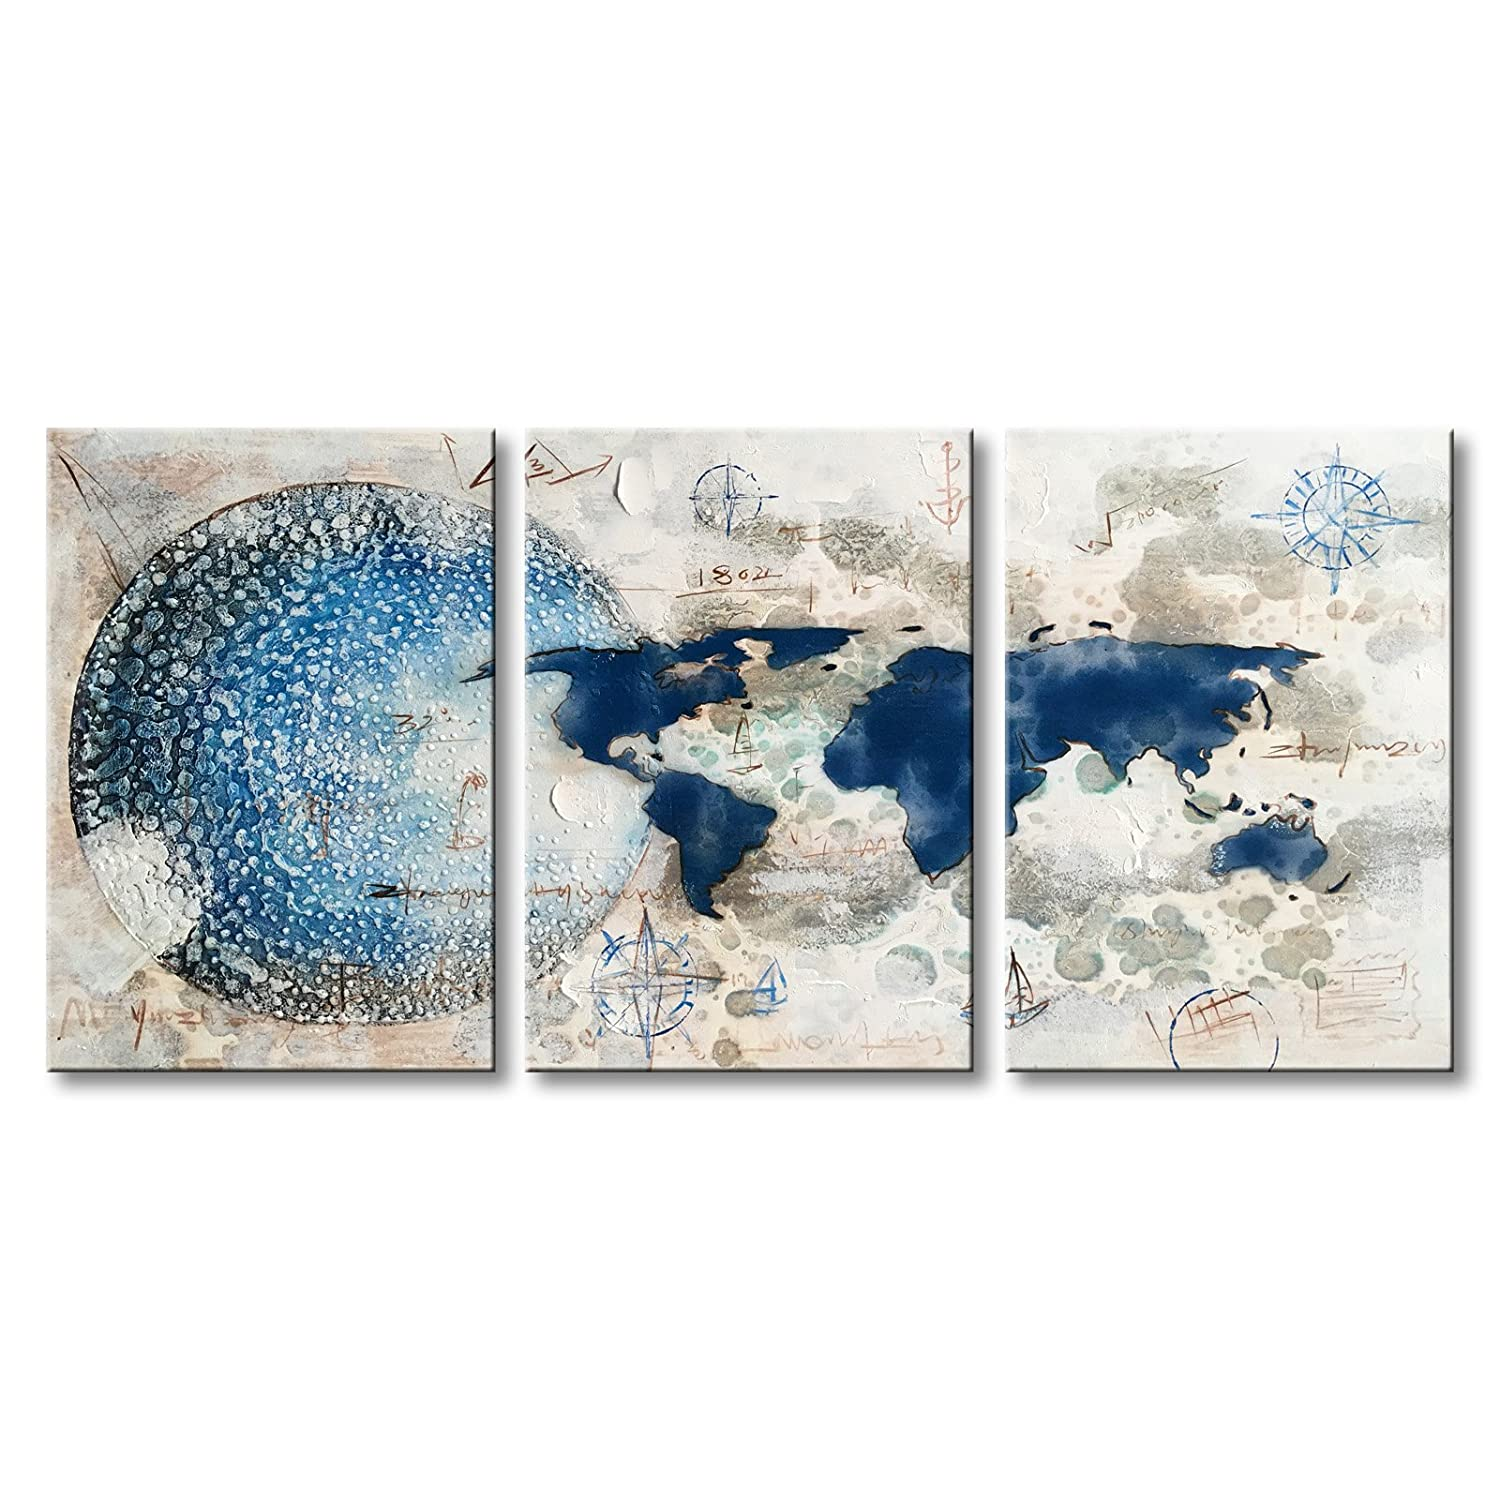 Amazon com everfun hand painted canvas painting world map decor modern 3 piece wall art blue and white abstract gallery artwork framed ready to hang